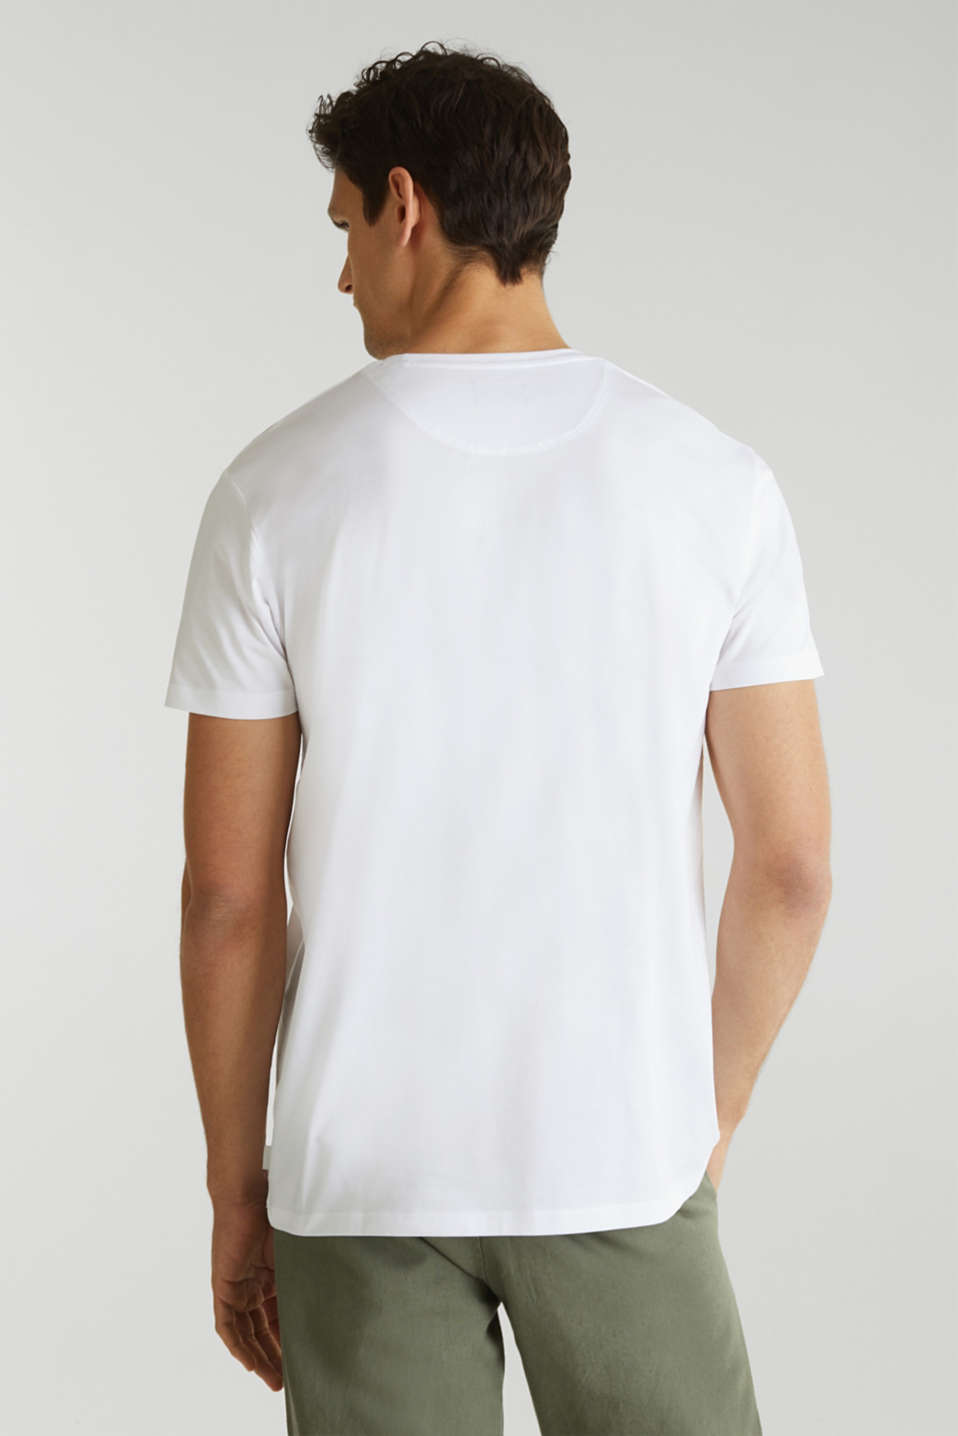 Jersey T-shirt in 100% cotton, WHITE 4, detail image number 2